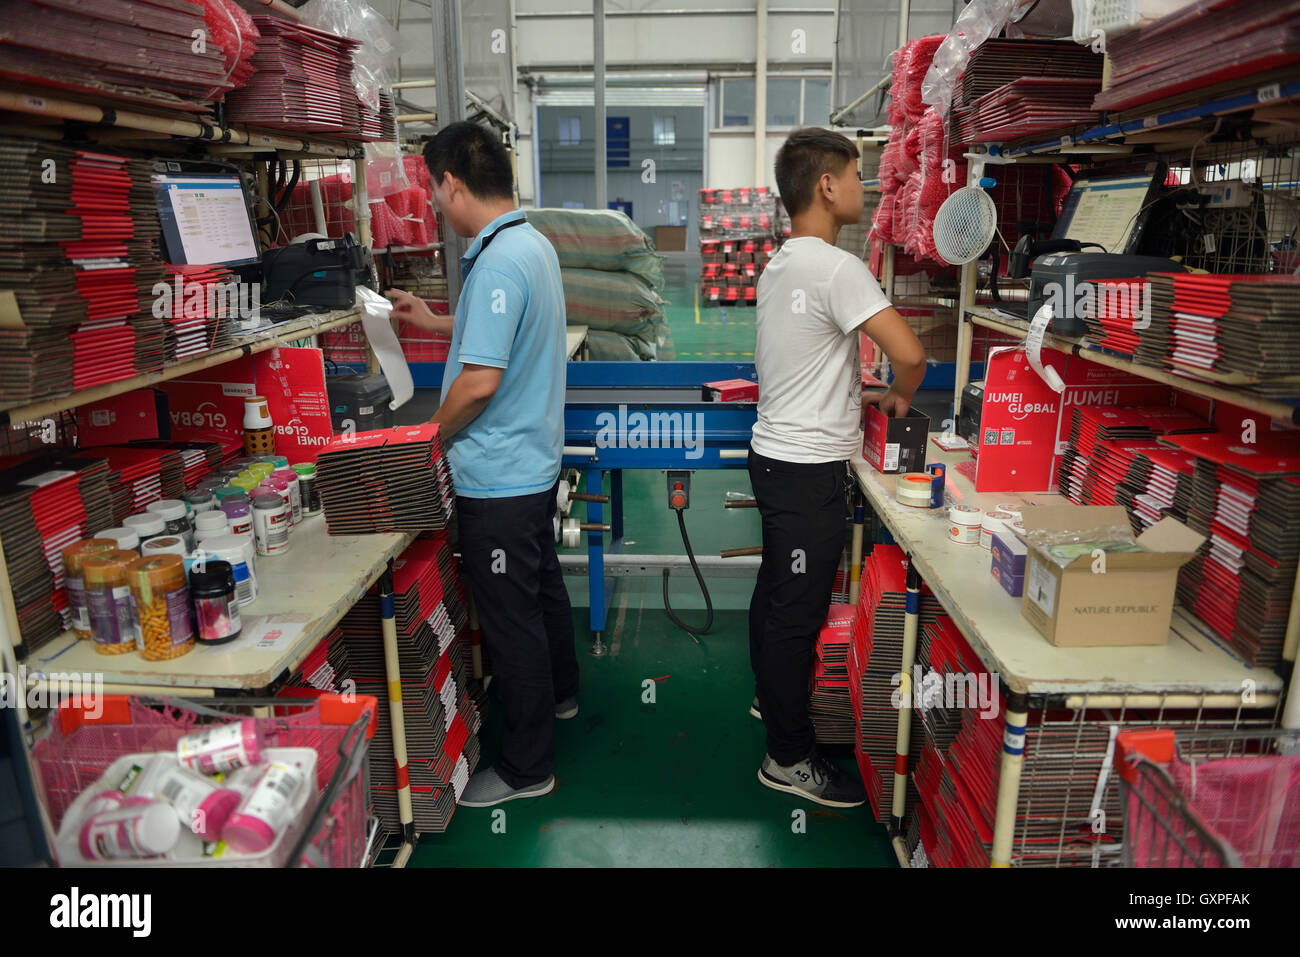 Workers wrap parcels of goods shopped from overseas through Jumei Global online channel during delivery at EHL International - Stock Image